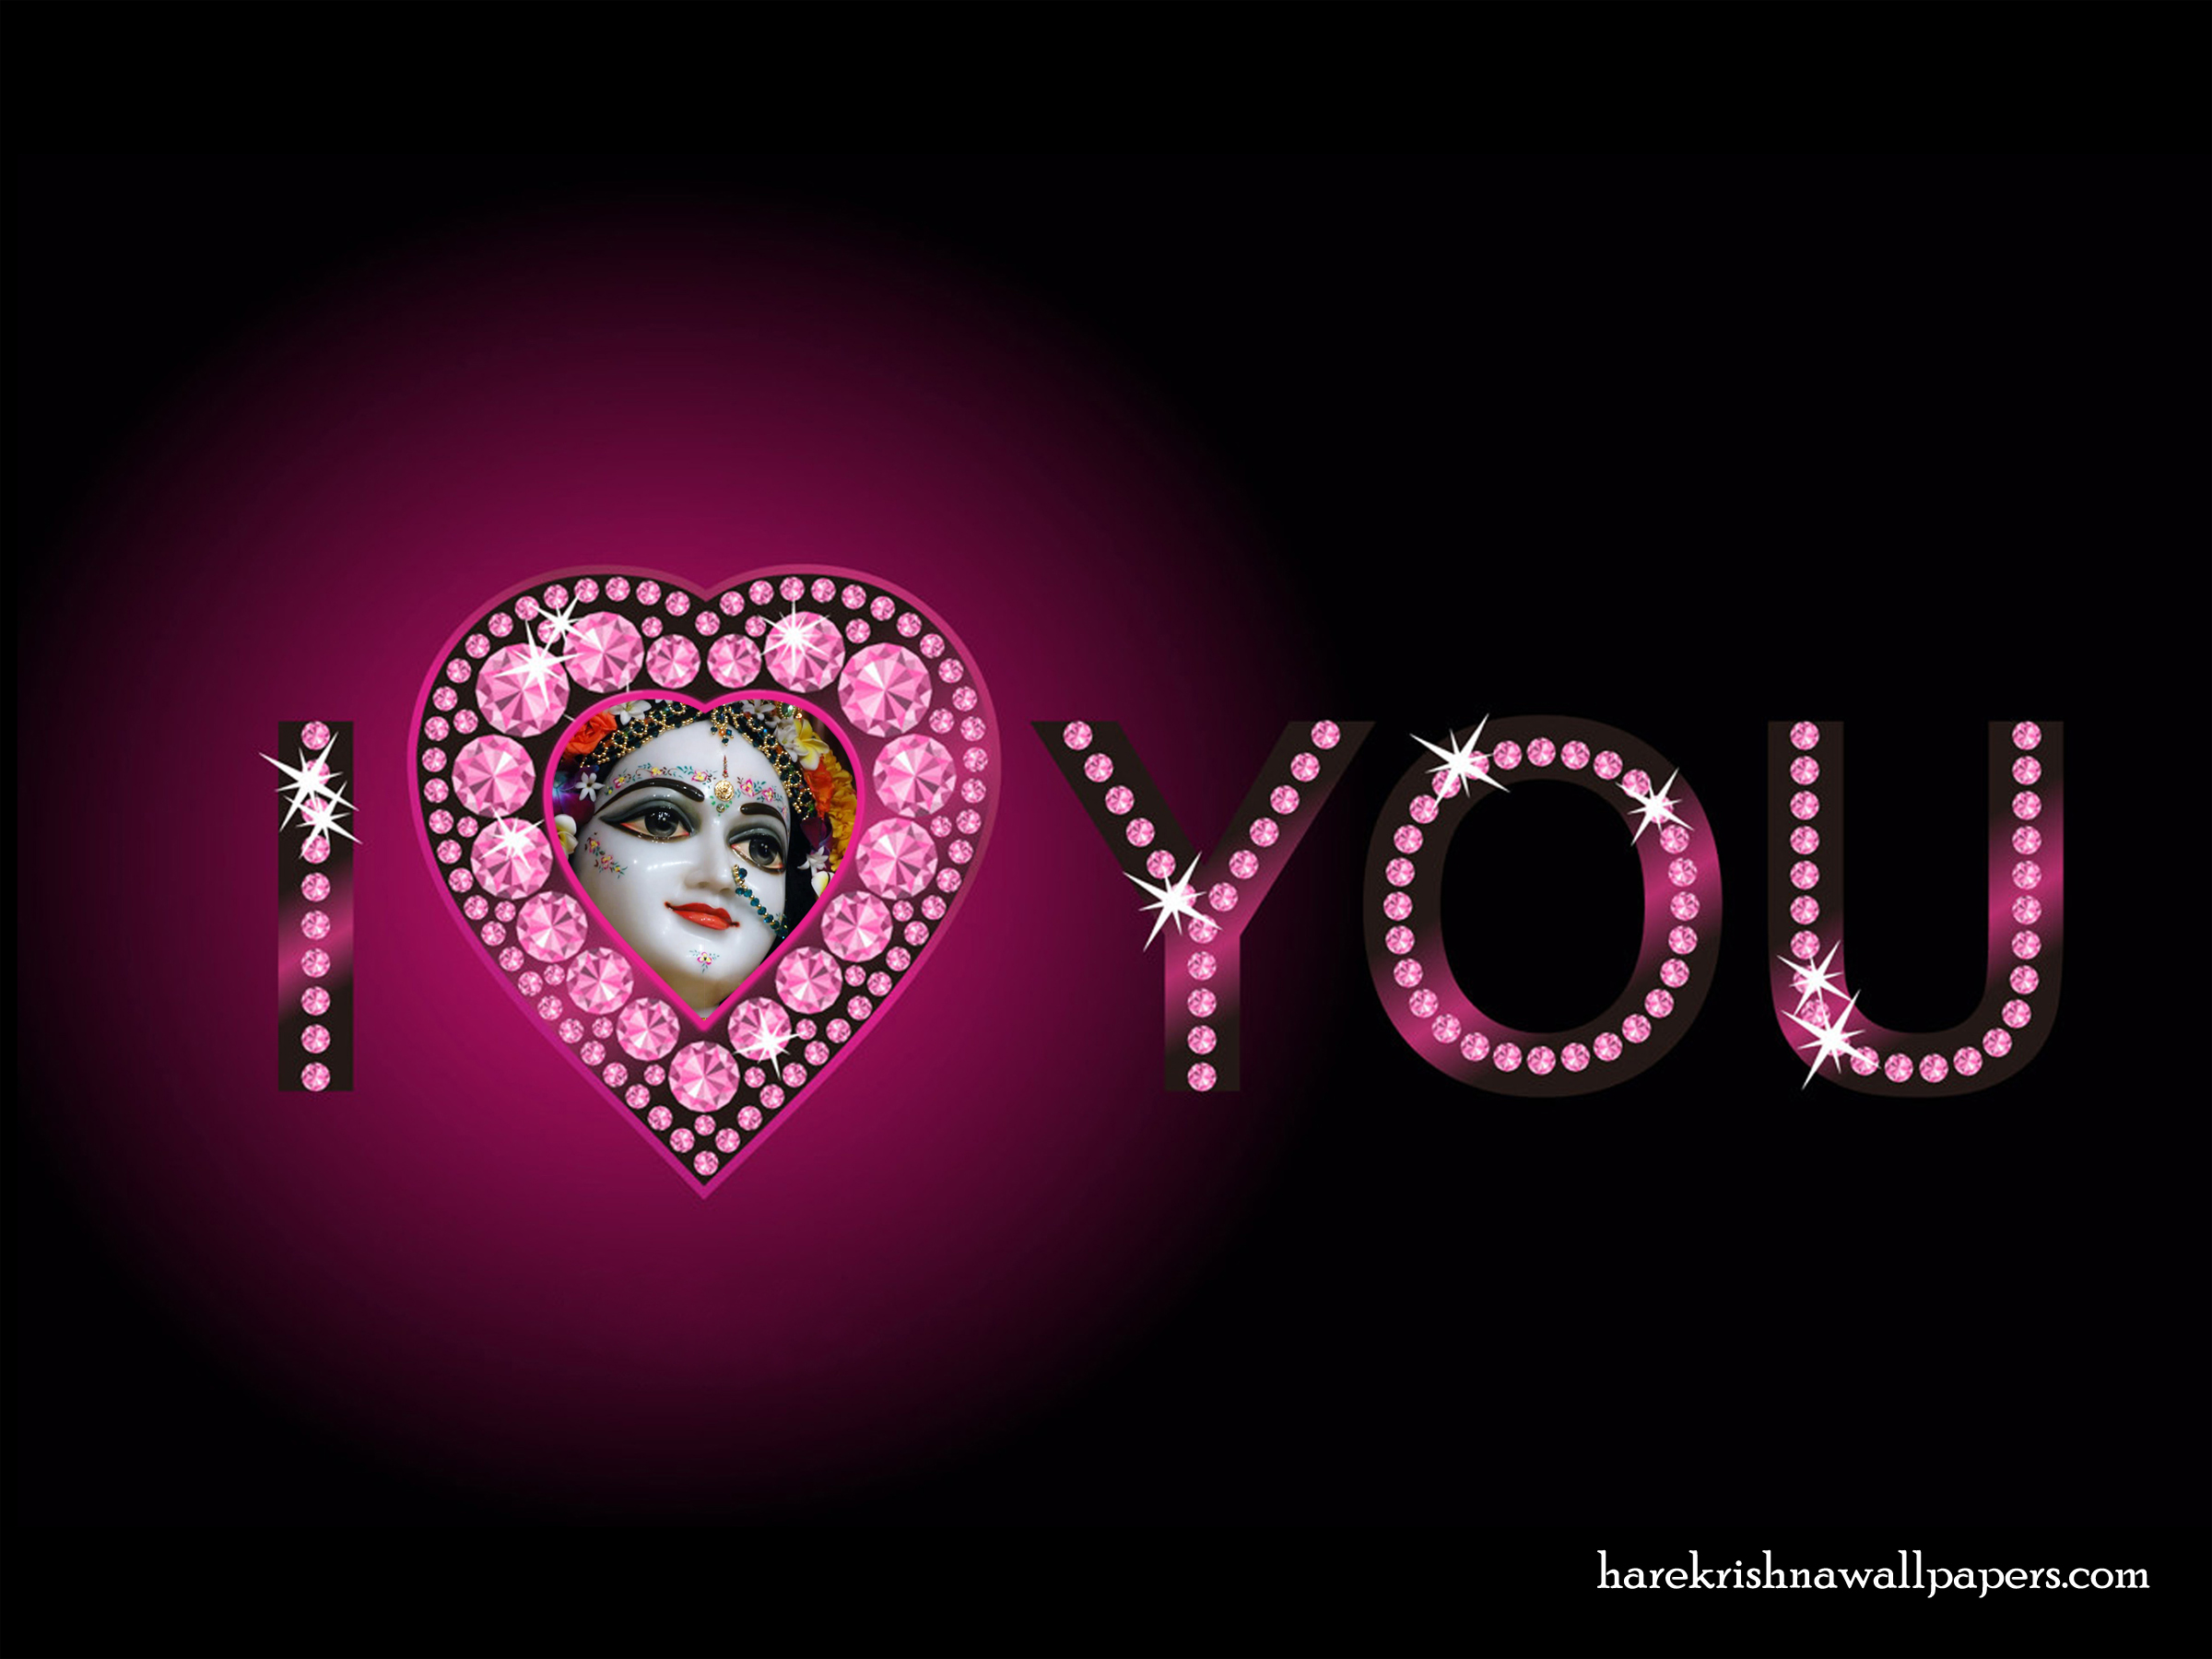 I Love You Radharani Wallpaper (013) Size 2400x1800 Download